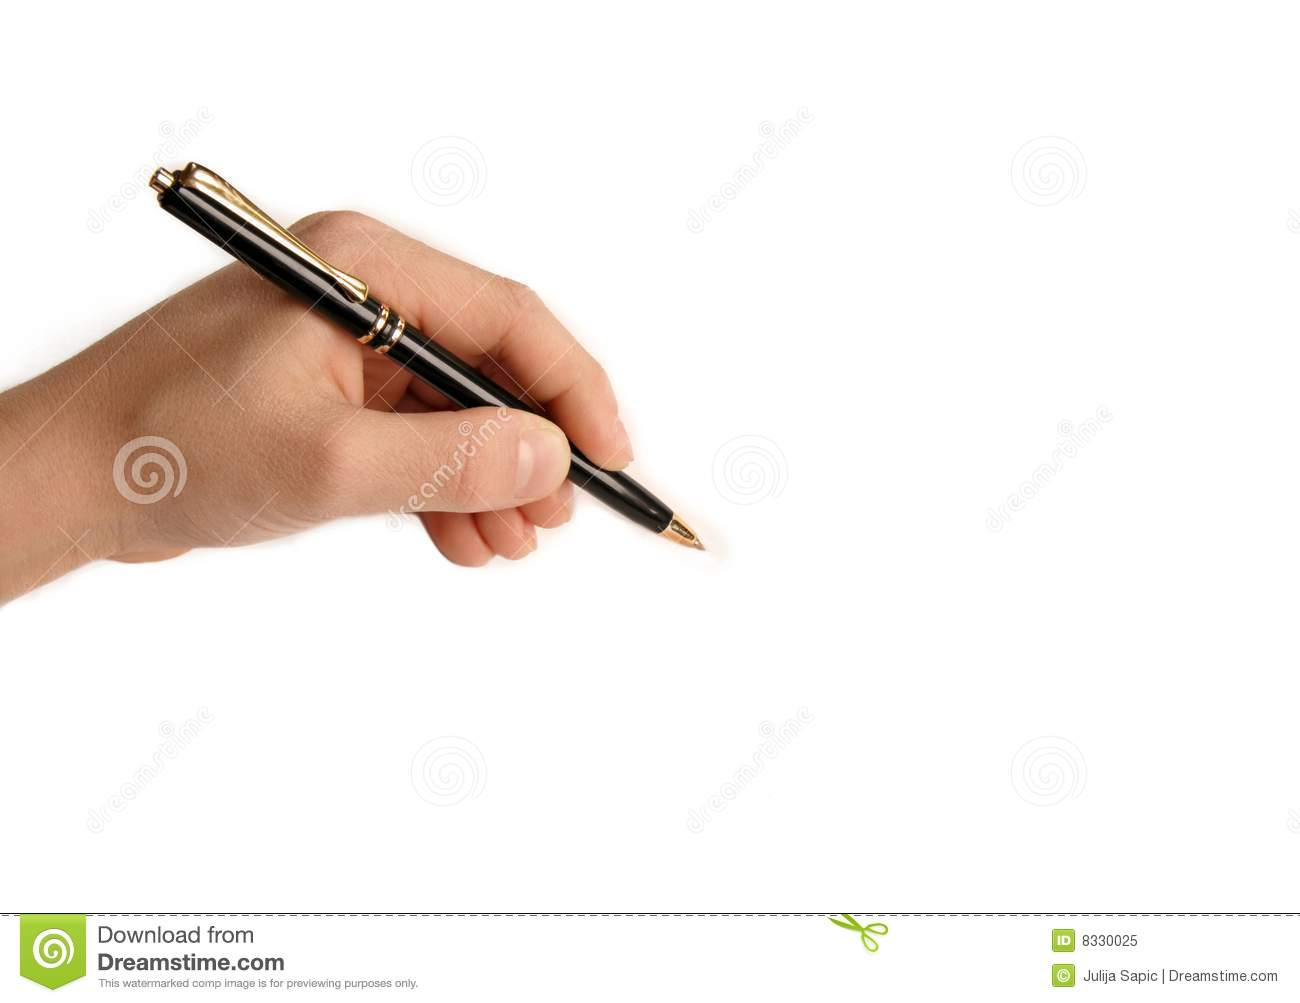 What Does it Mean to Be Left Handed?